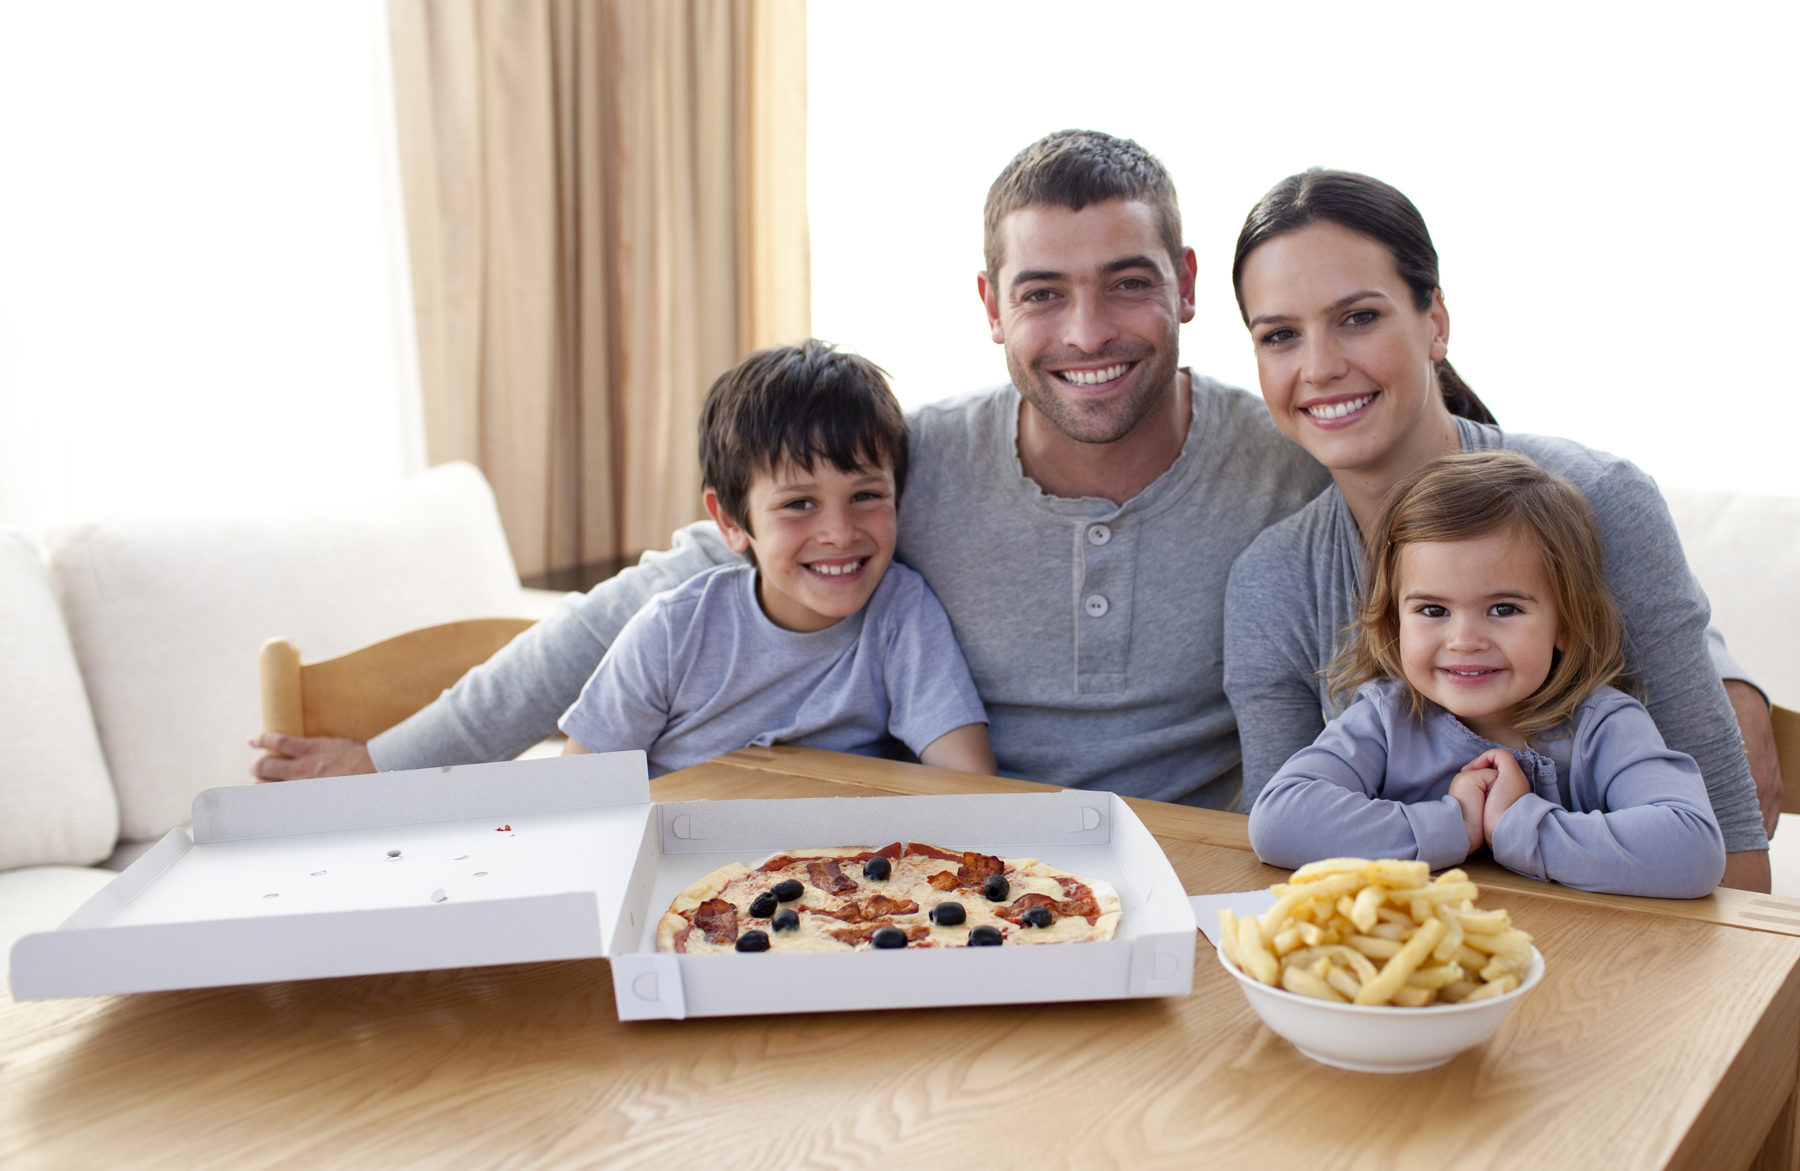 Family Eating Pizza And Fries At Home | Ellyn Satter Institute